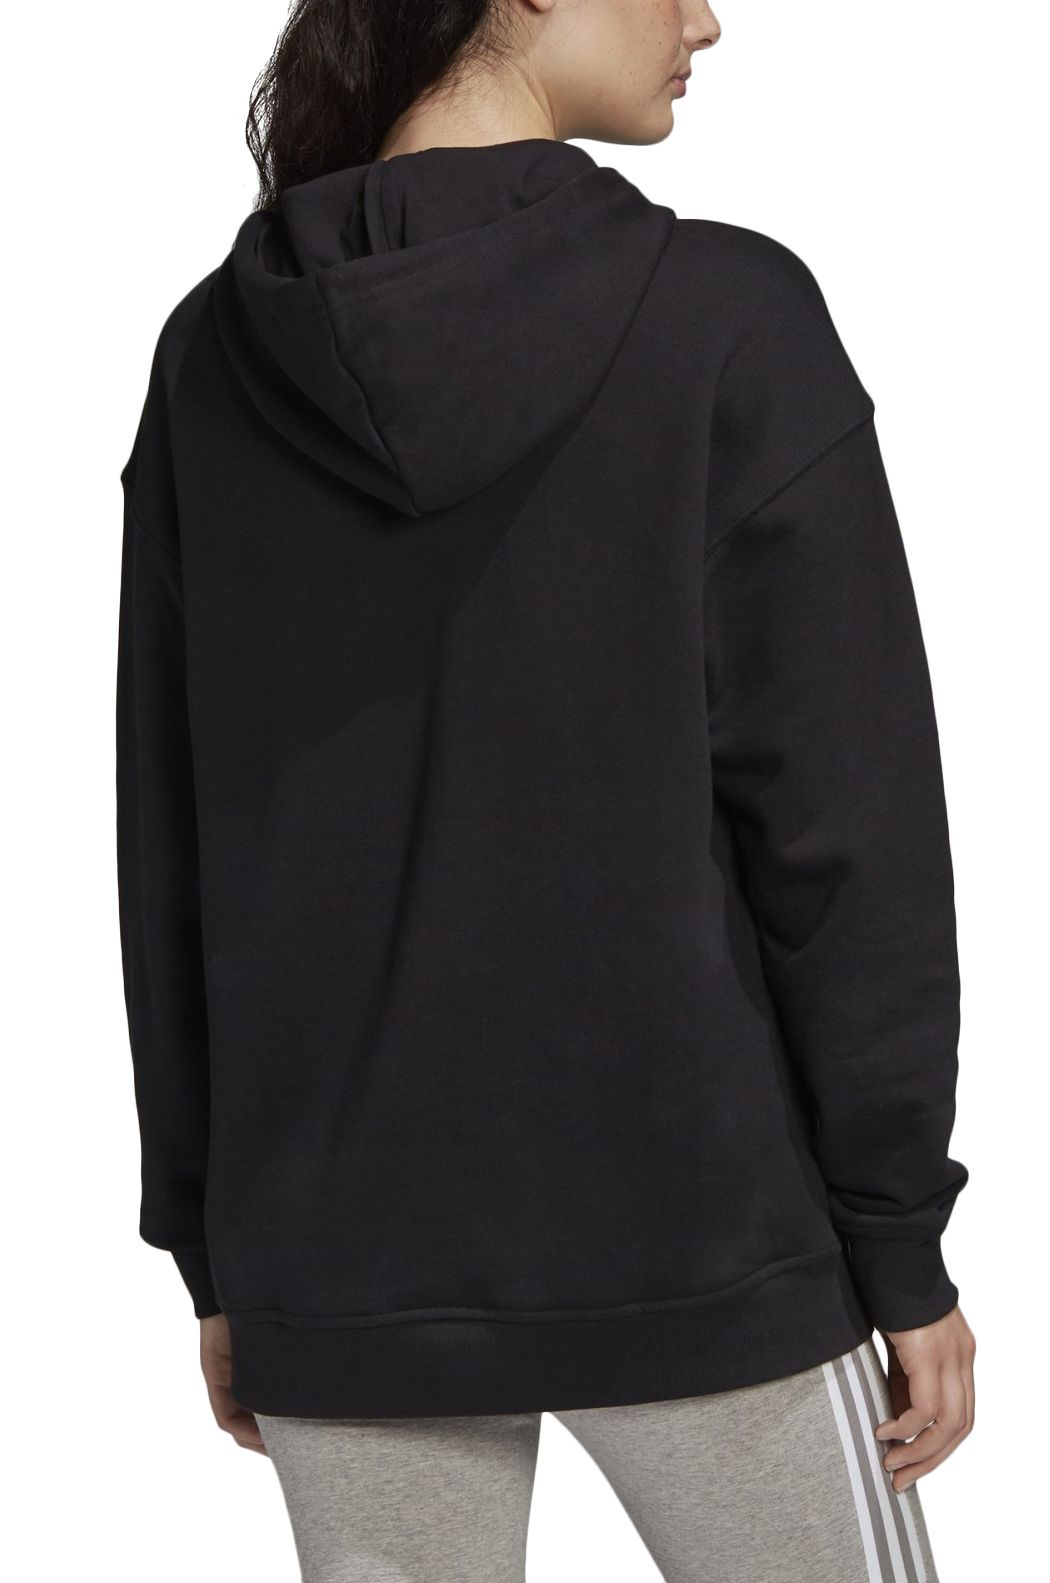 Sweat Capuz Adidas TRF HOODIE Black/White